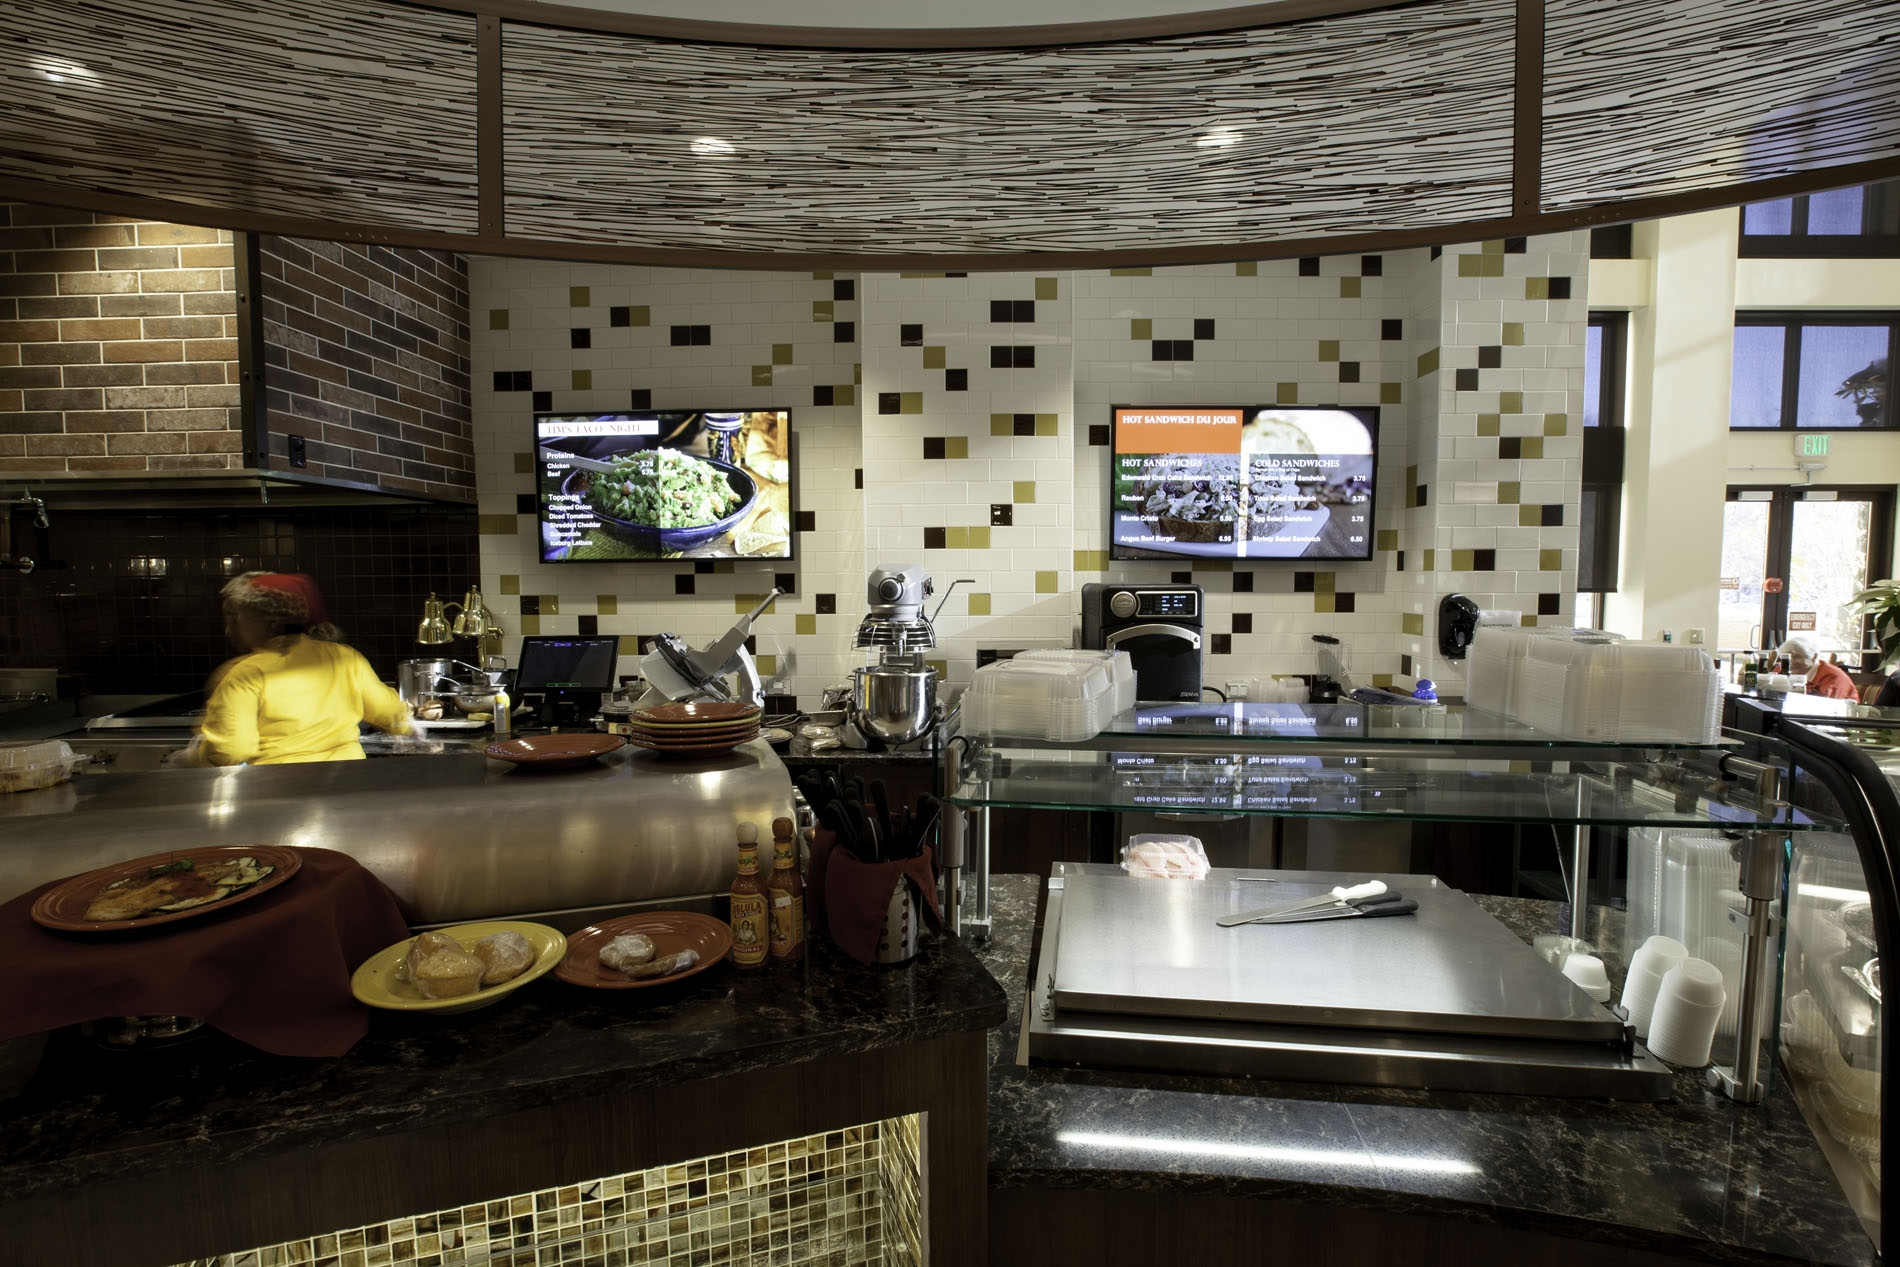 3. Seamlessly implement and manage multiple dining facilities -